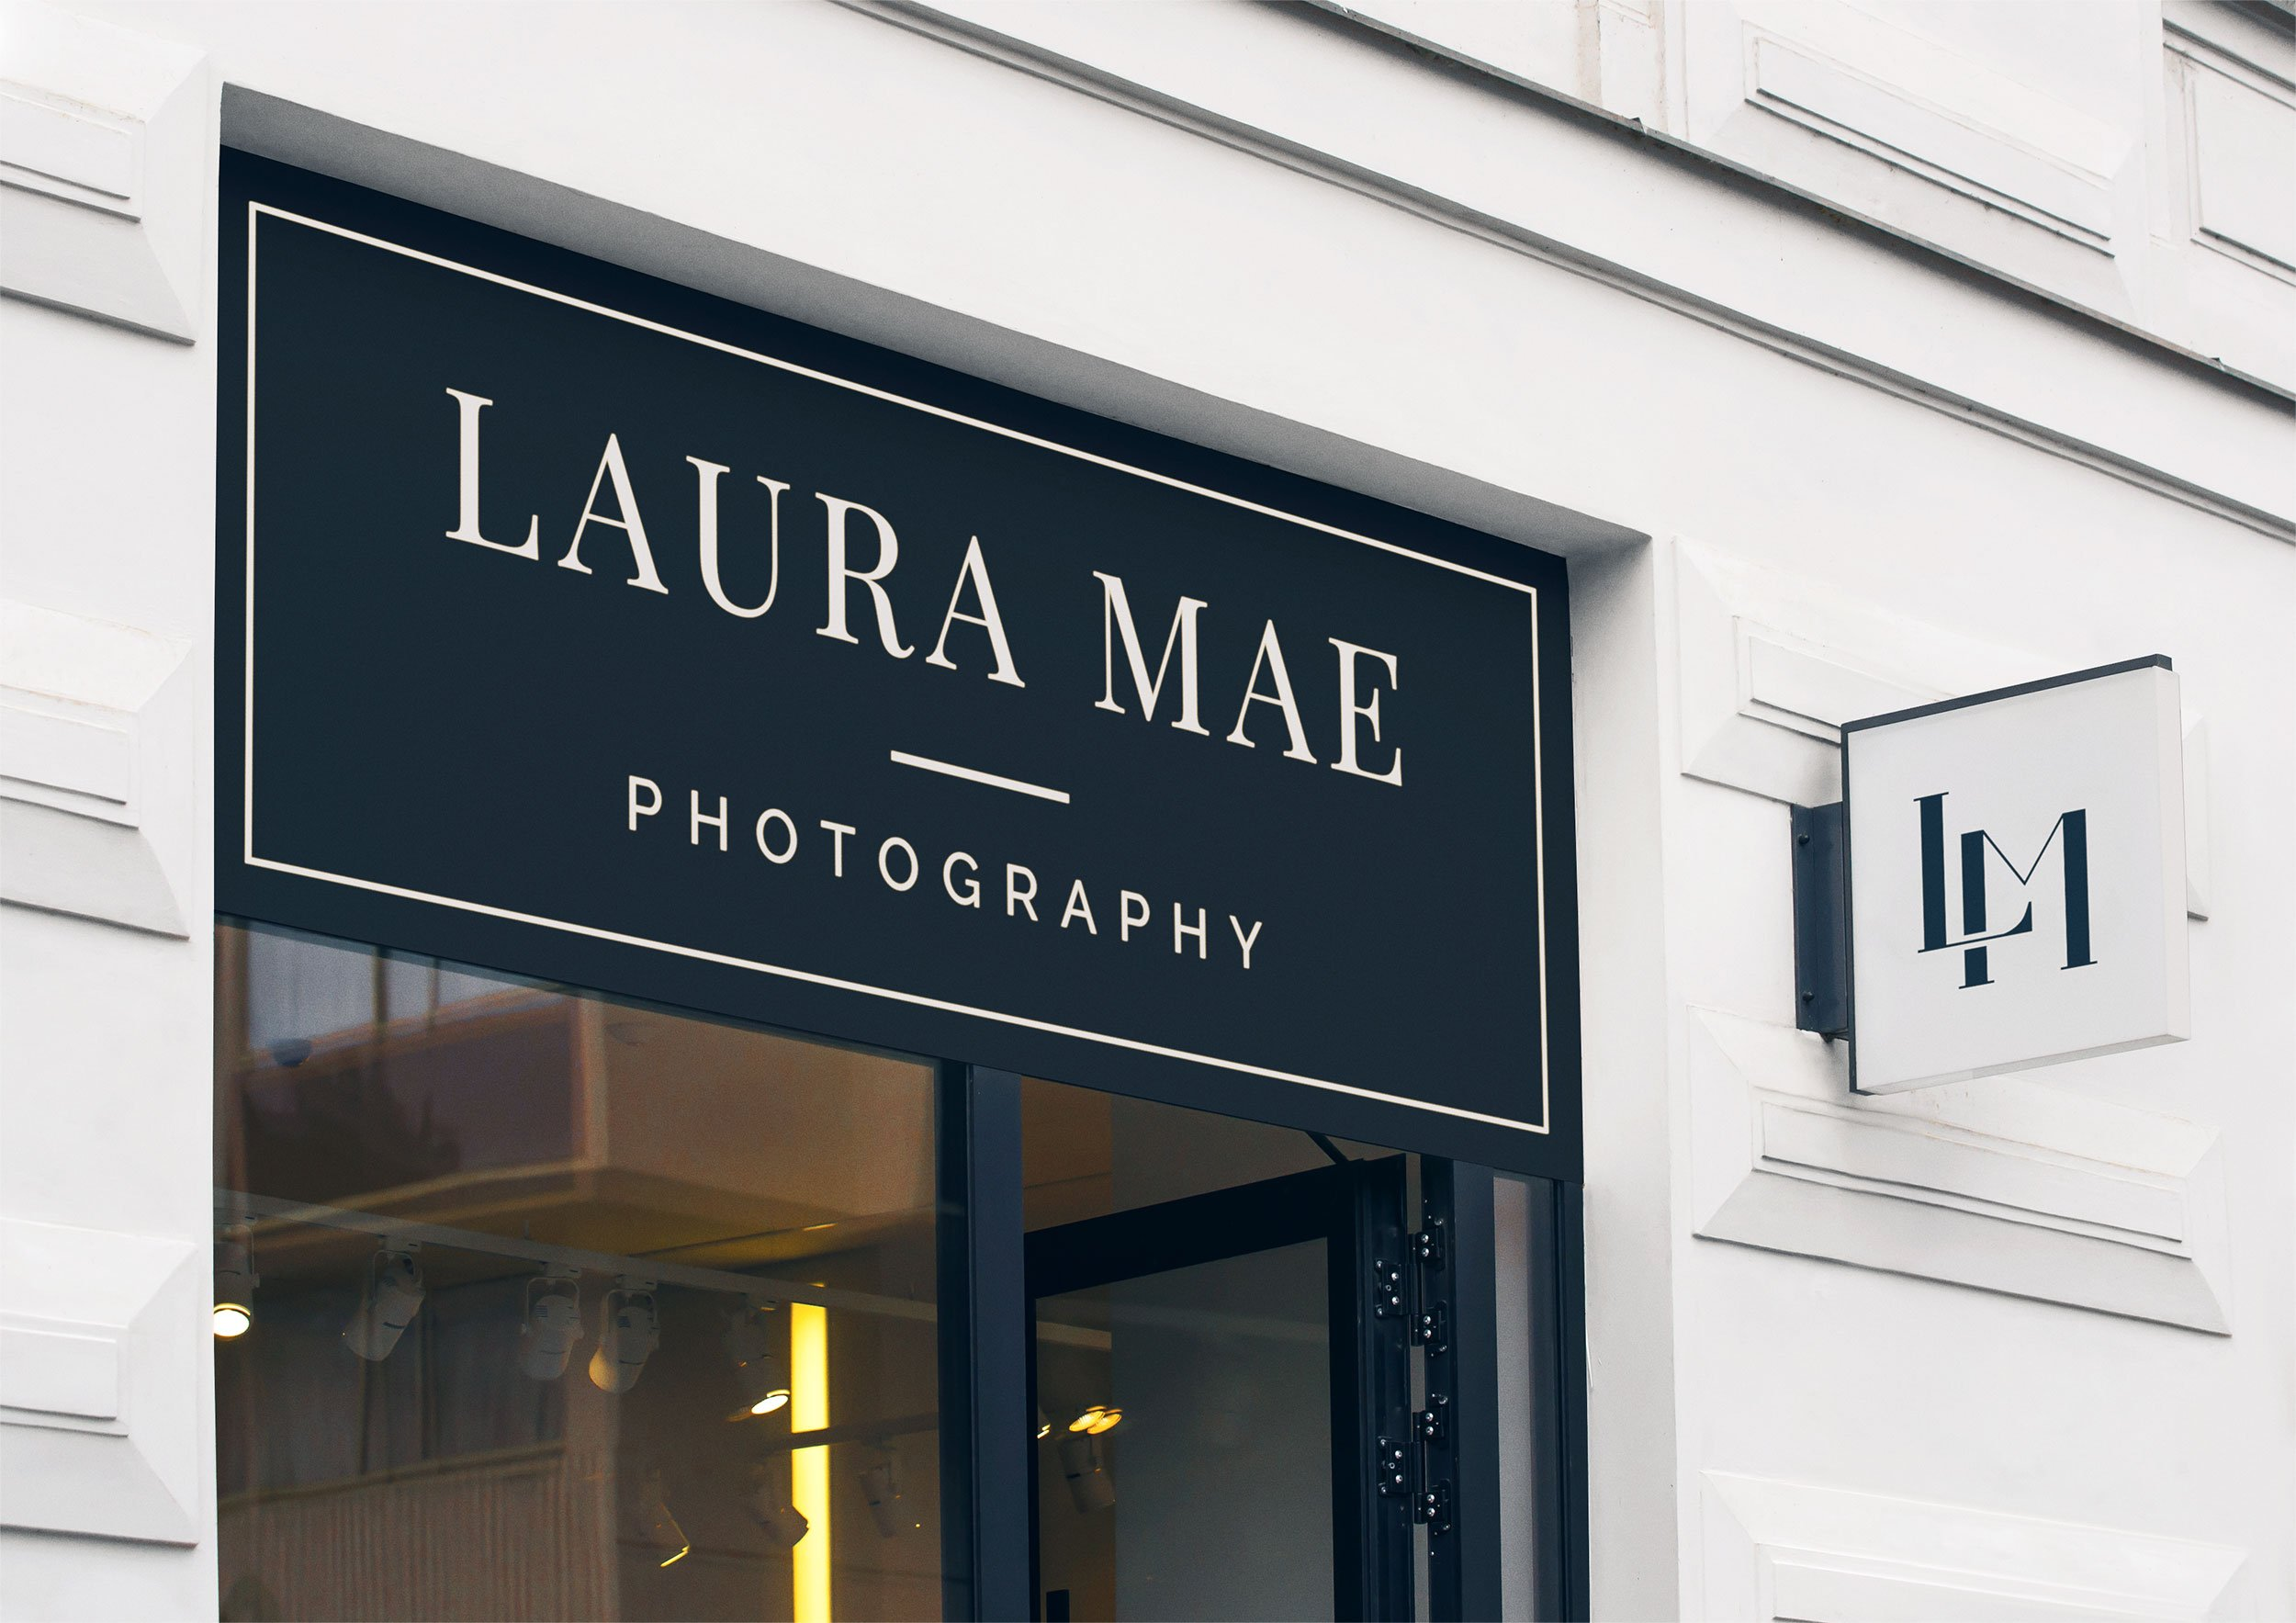 luxe branding laura mae photography by taney creative